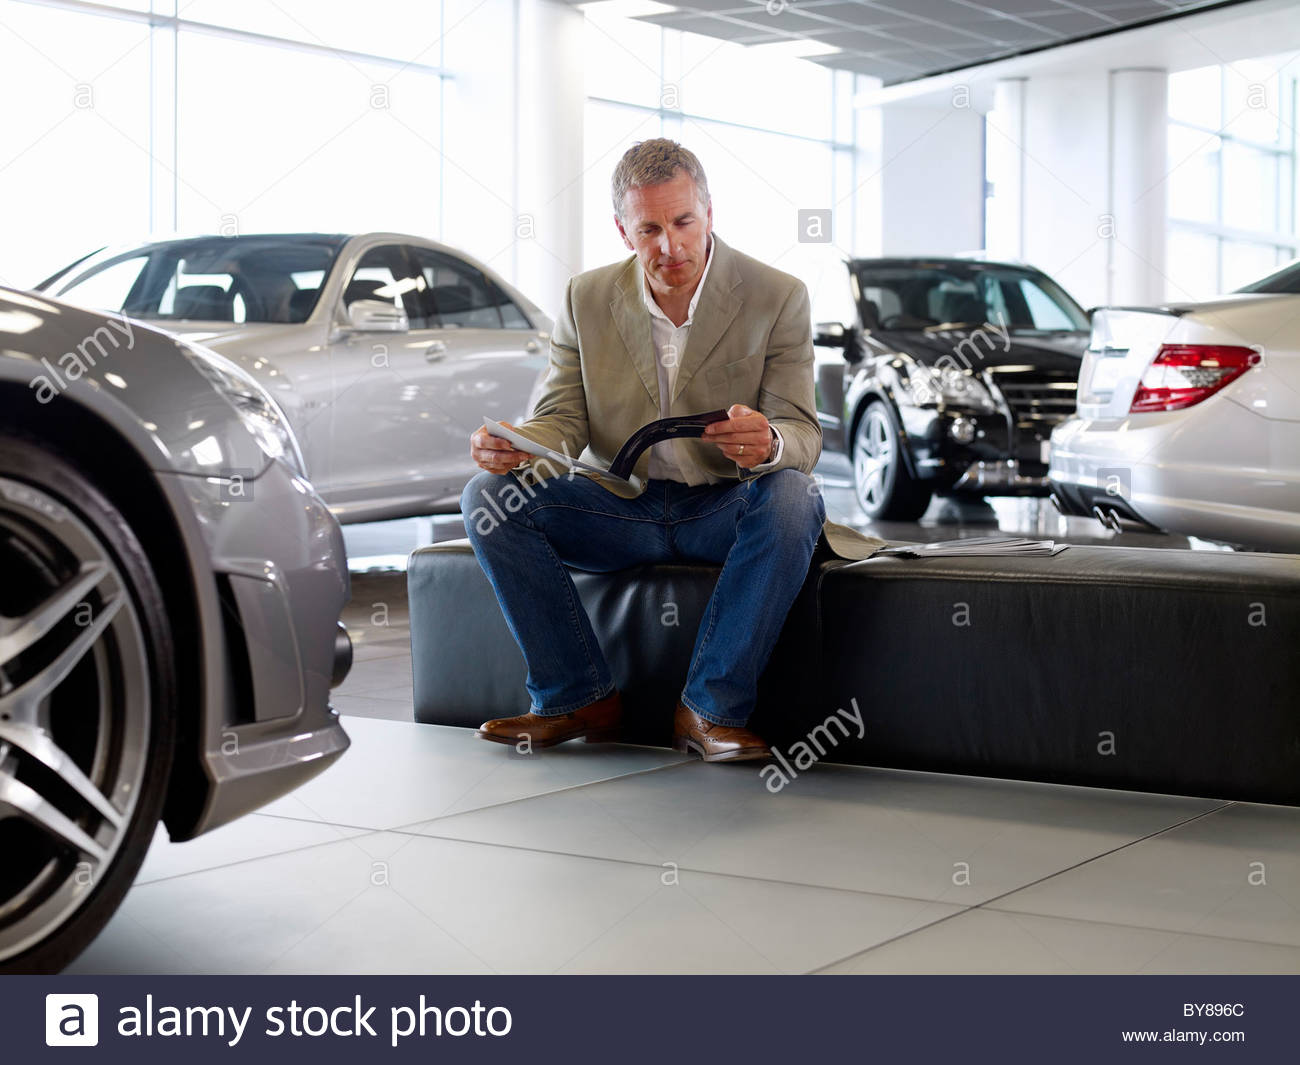 Man looking at brochure in automobile showroom Stock Photo